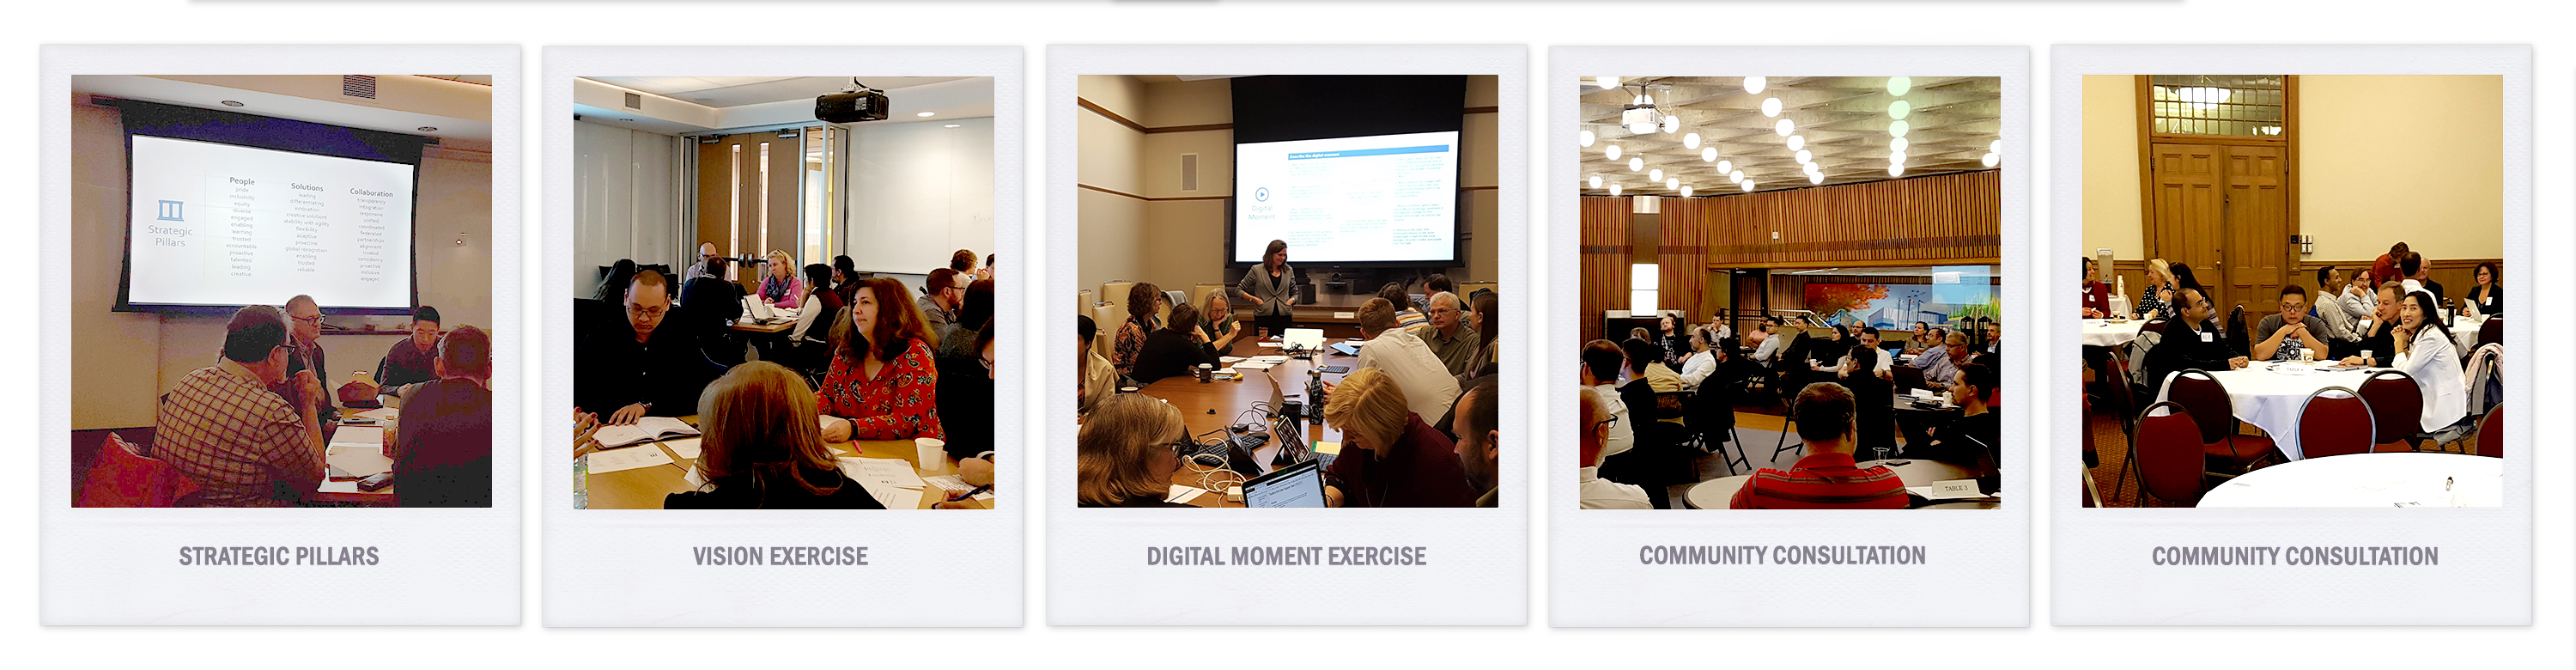 photos from IT at U of T strategic planning sessions with all ITS staff, IT leaders, and steering committee